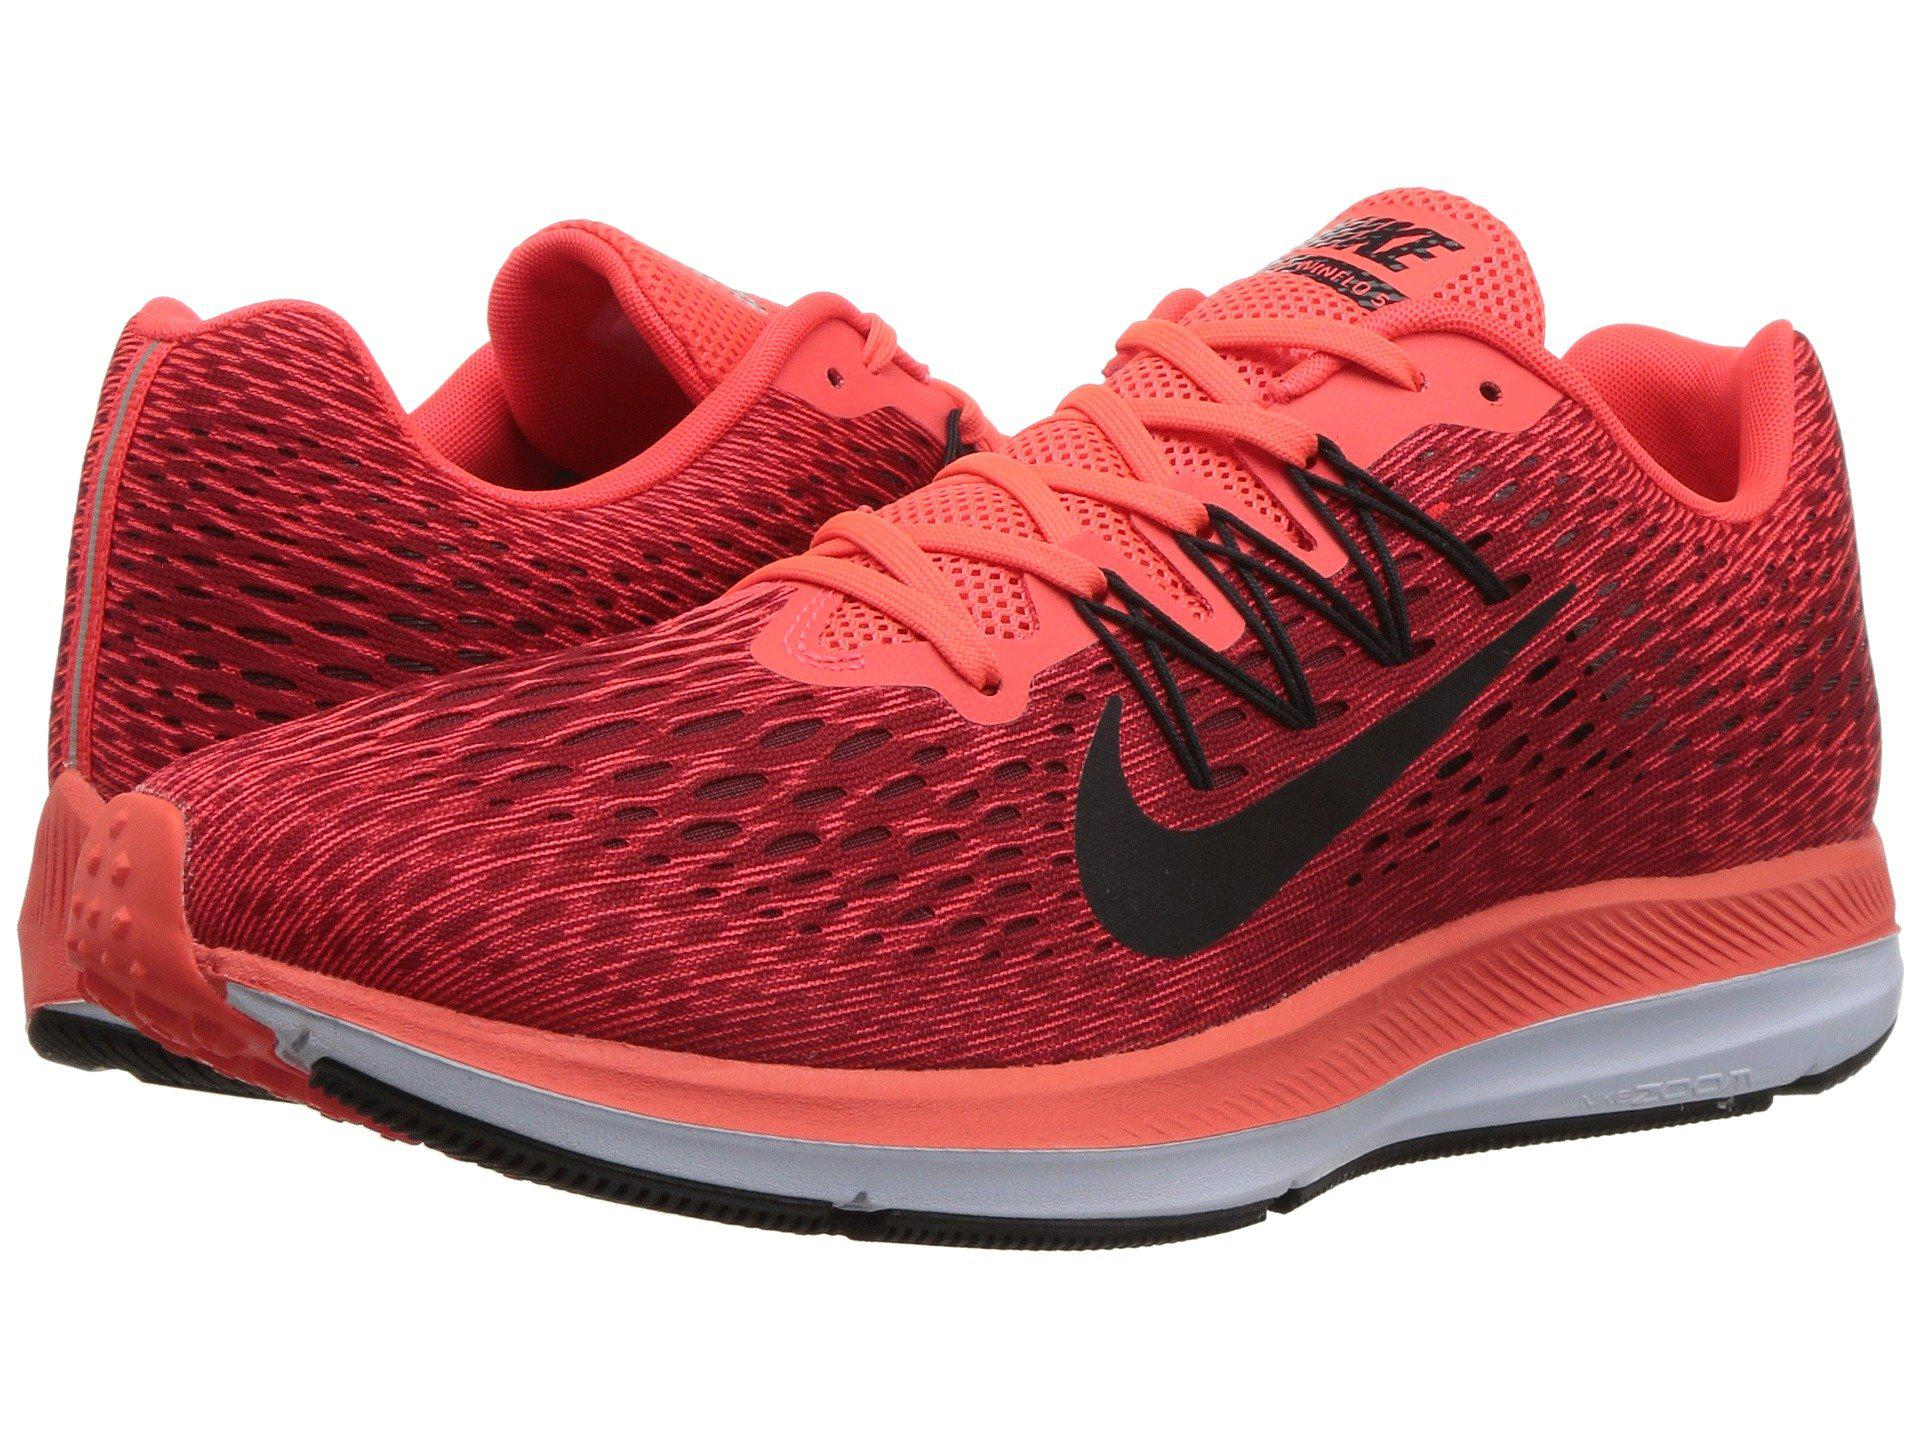 78d6713f218b Lyst - Nike Air Zoom Winflo 5 in Red for Men - Save 27%